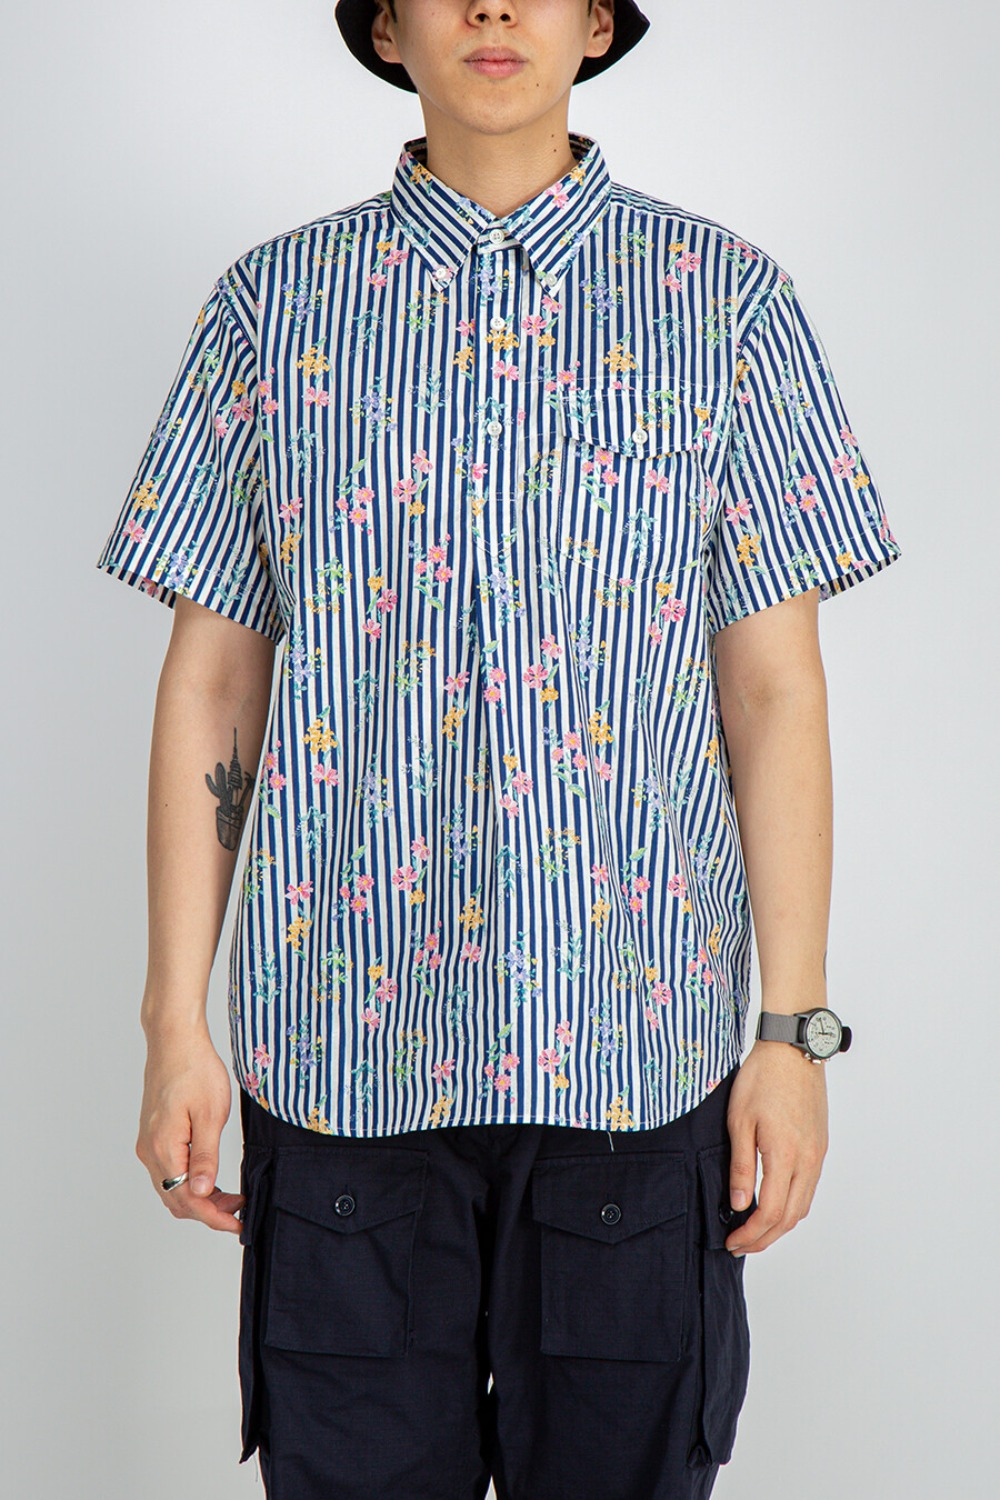 POPOVER BD SHIRT COTTON FLORAL STRIPE PRINT NAVY